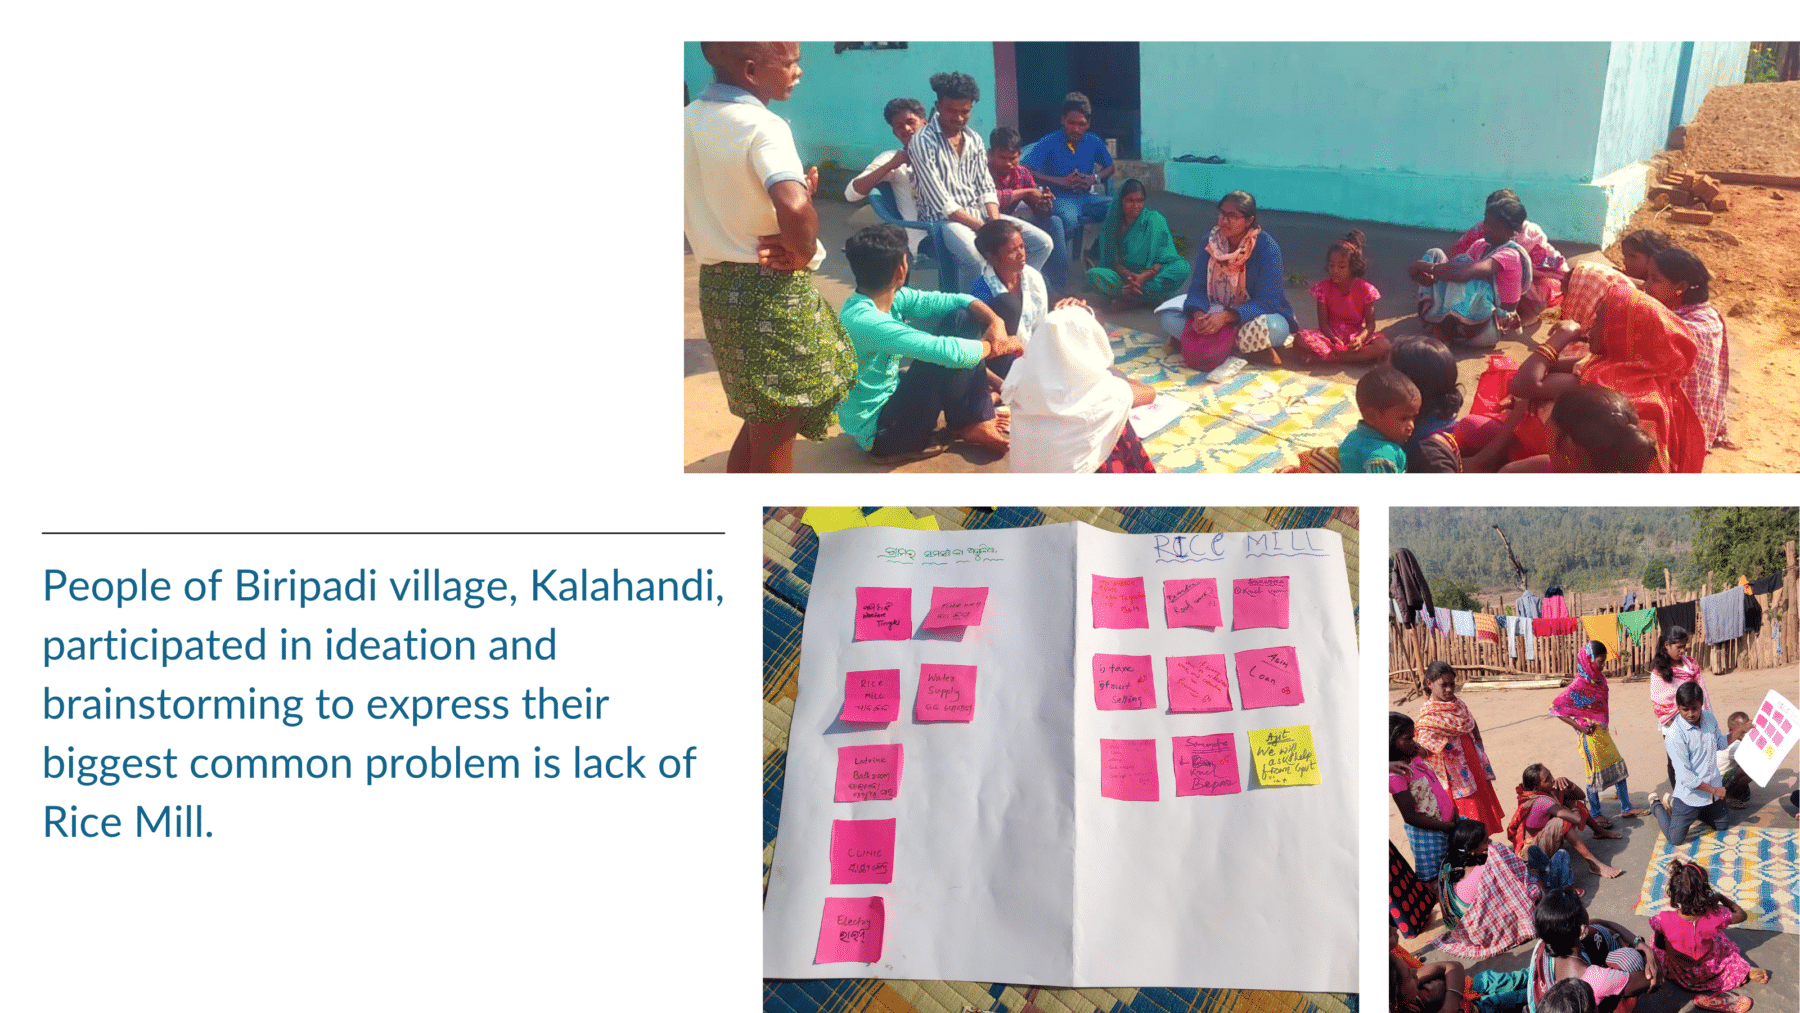 People of Biripadi village, Kalahandi, participated in ideation and brainstorming to express their biggest common problem is lack of Rice Mill.